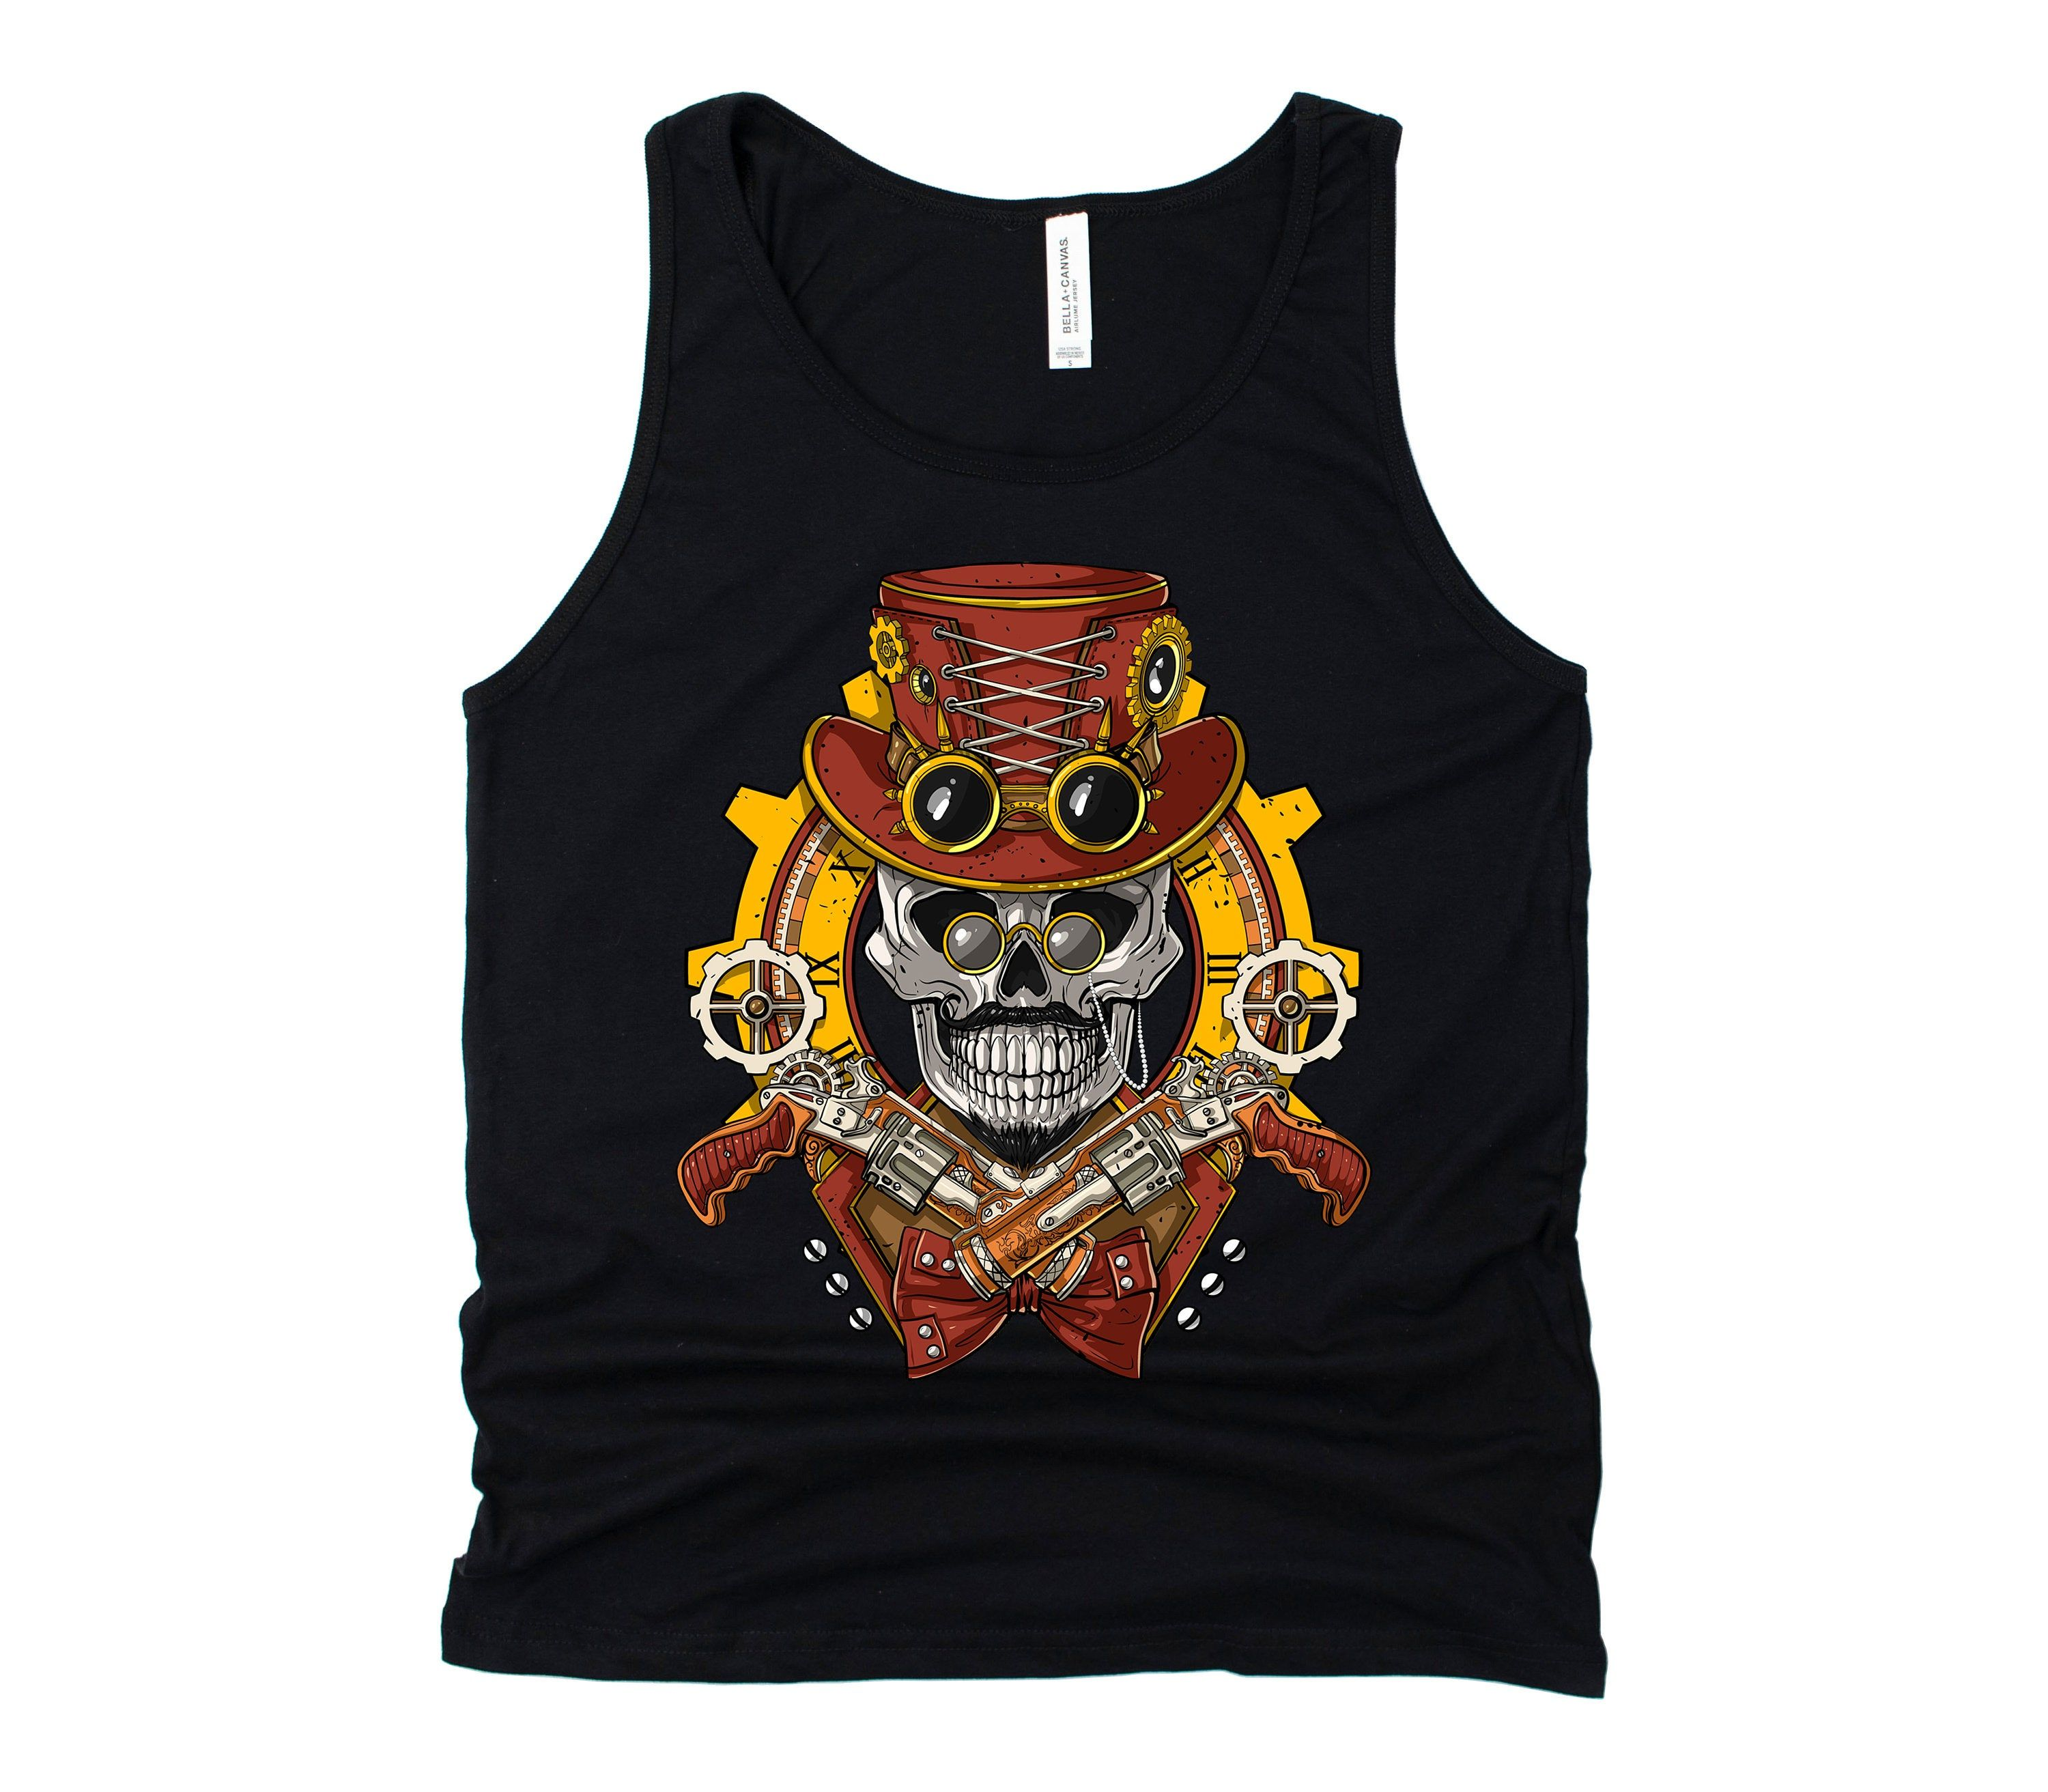 DressCode Aliens Mens Aliens Inside Tank Top